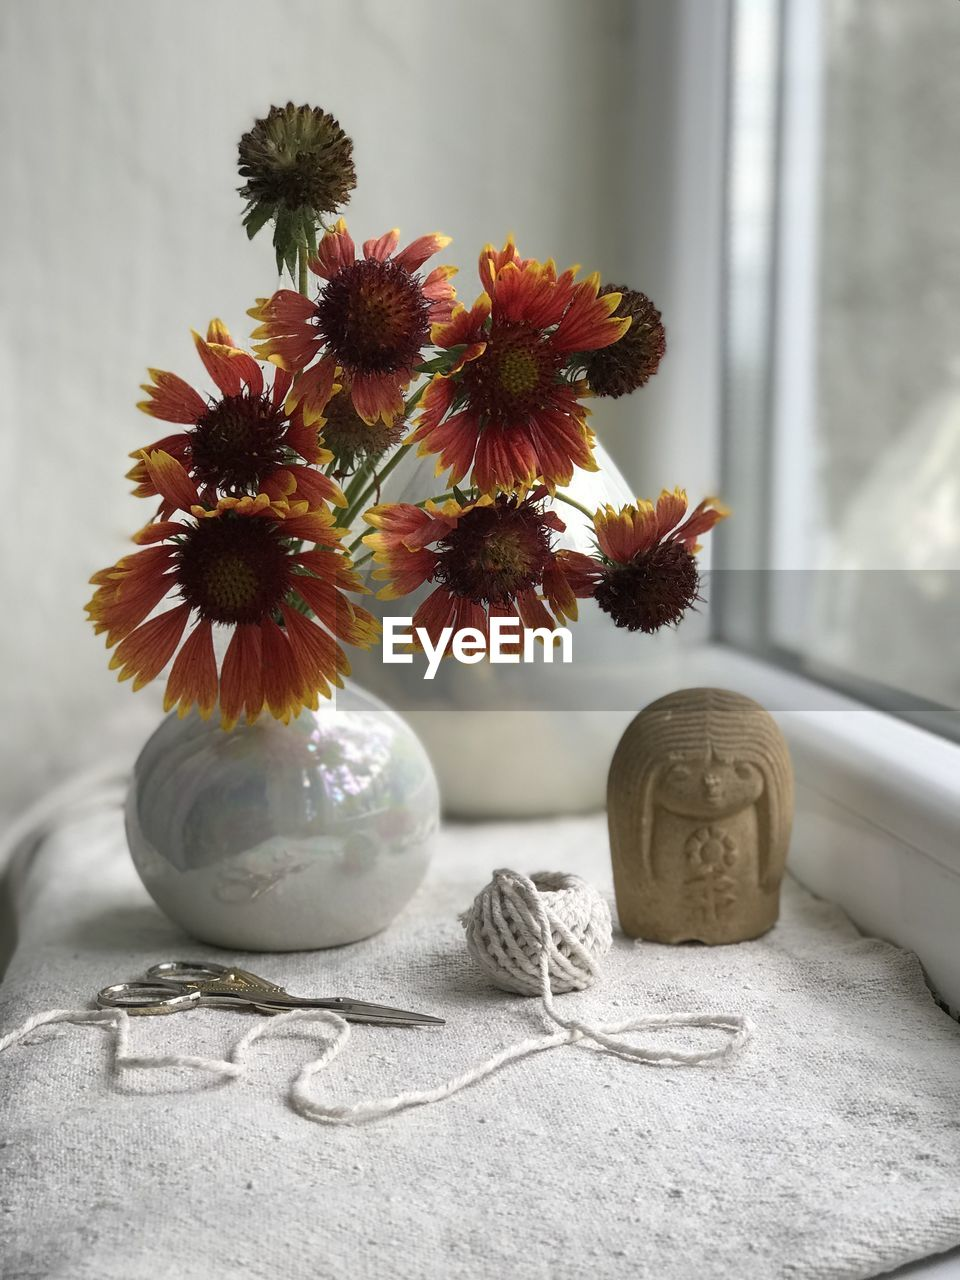 indoors, vase, table, flower, no people, flowering plant, plant, still life, nature, close-up, vulnerability, fragility, decoration, freshness, home interior, food, focus on foreground, food and drink, healthy eating, flower head